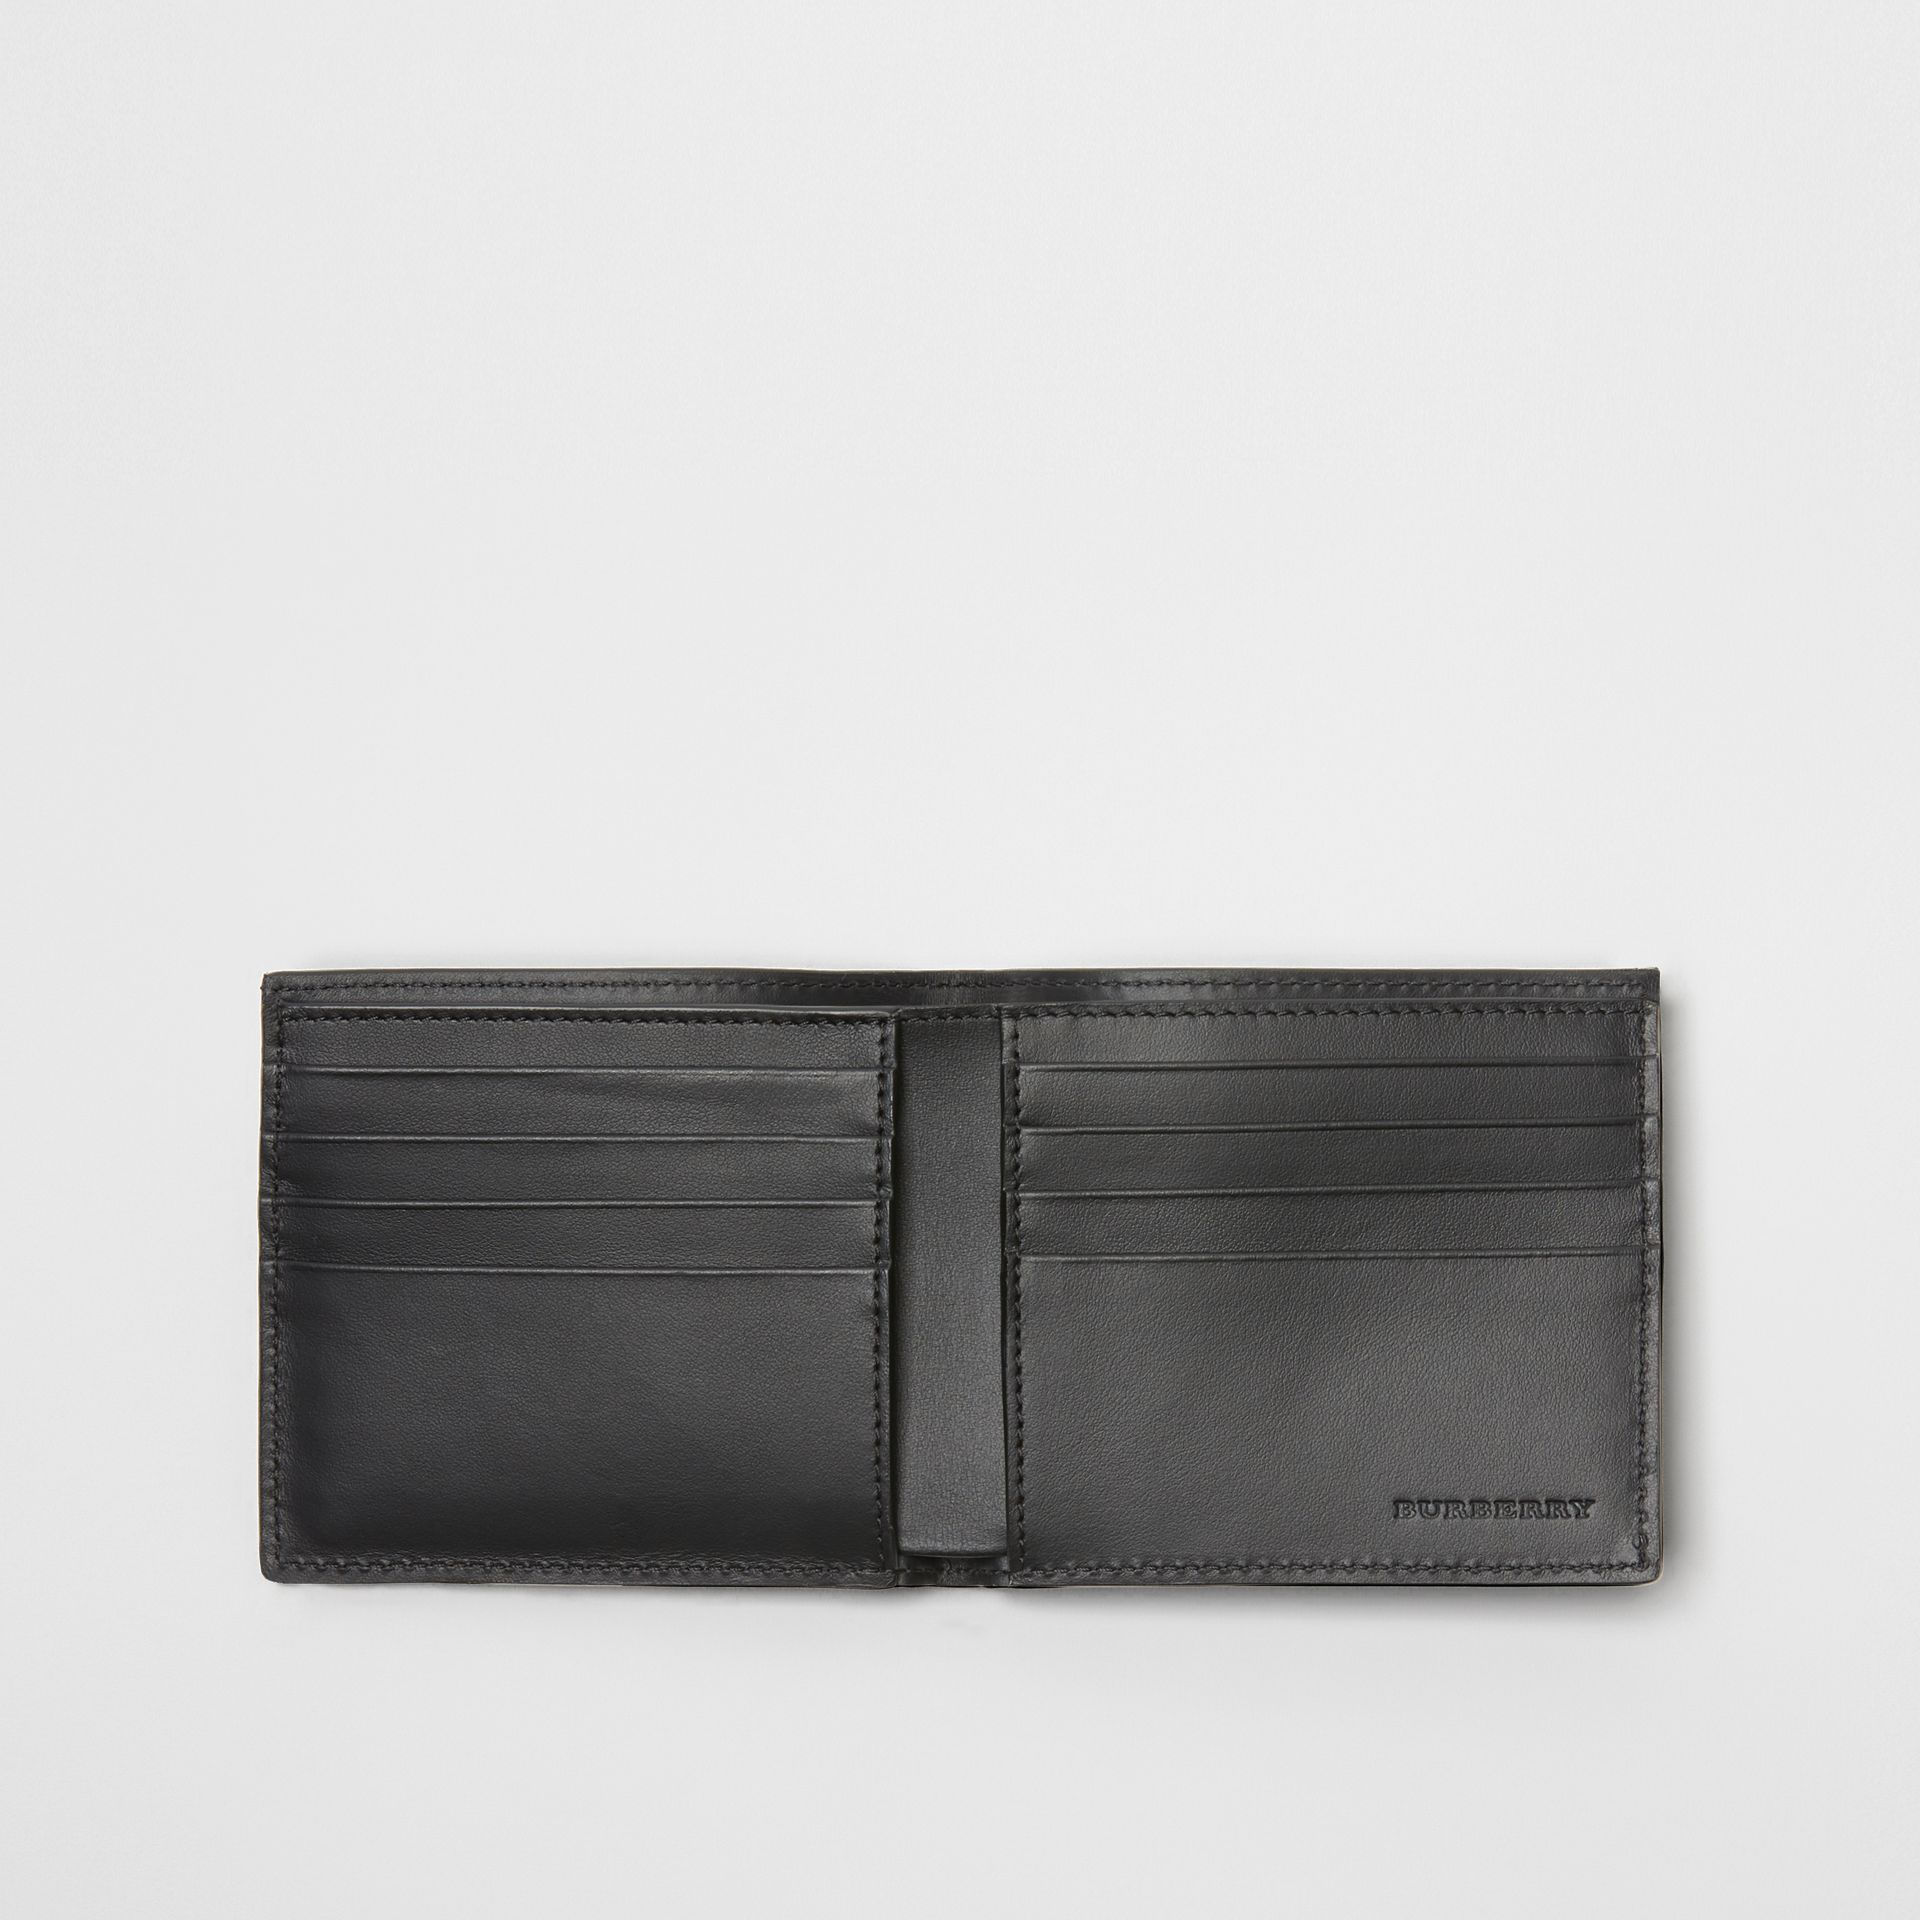 Perforated Check Leather International Bifold Wallet in Black - Men | Burberry Australia - gallery image 2